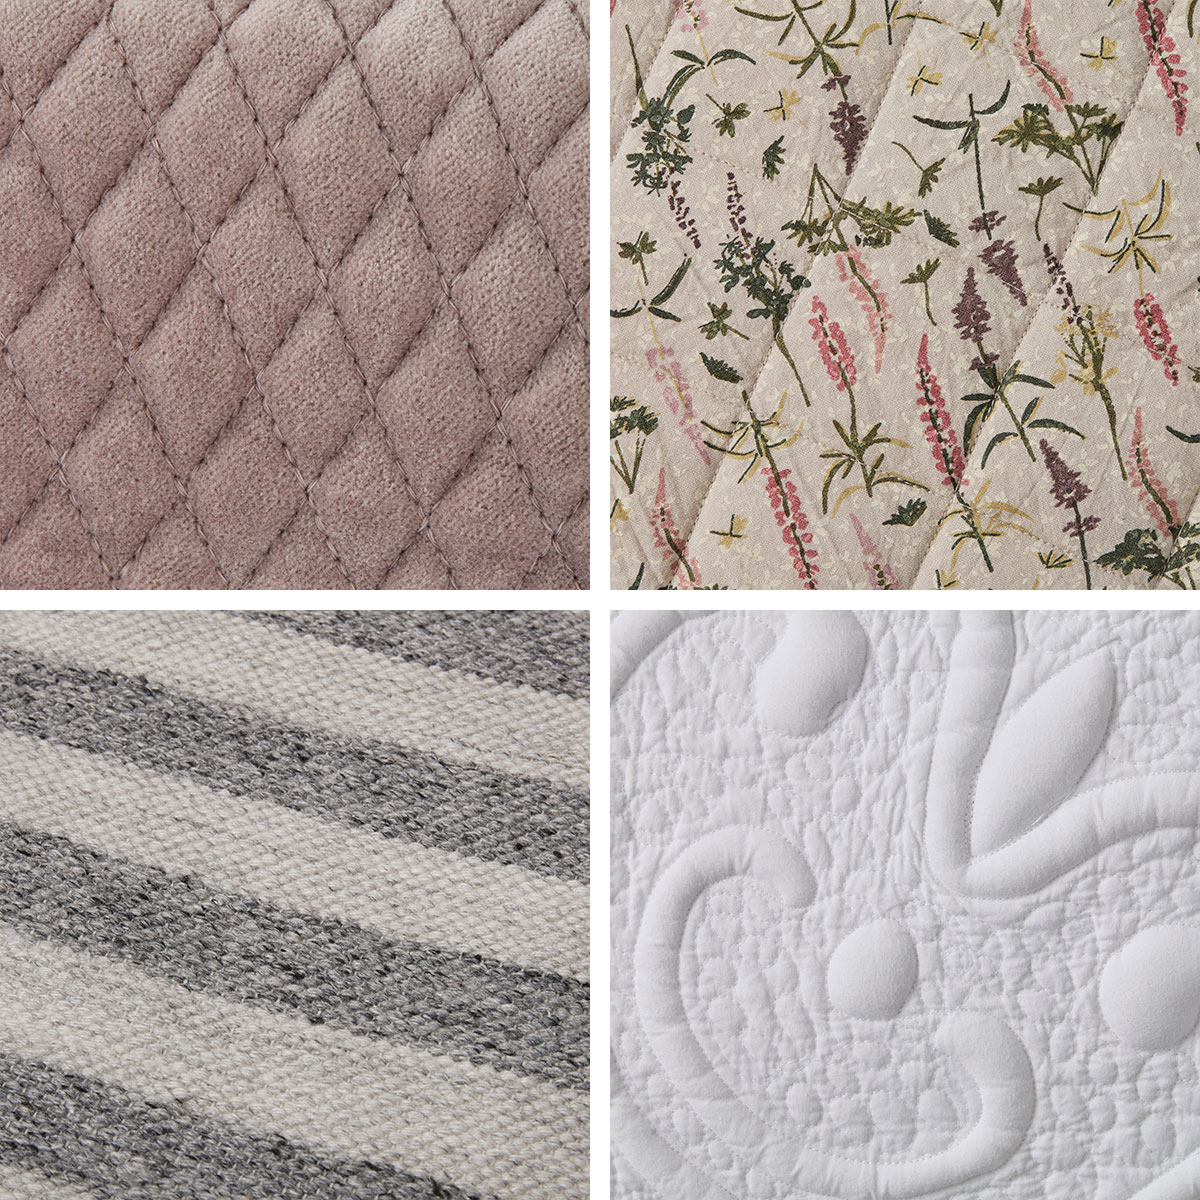 Decorate with soft textiles like rugs, cushions, and throws - Lene Bjerre Design